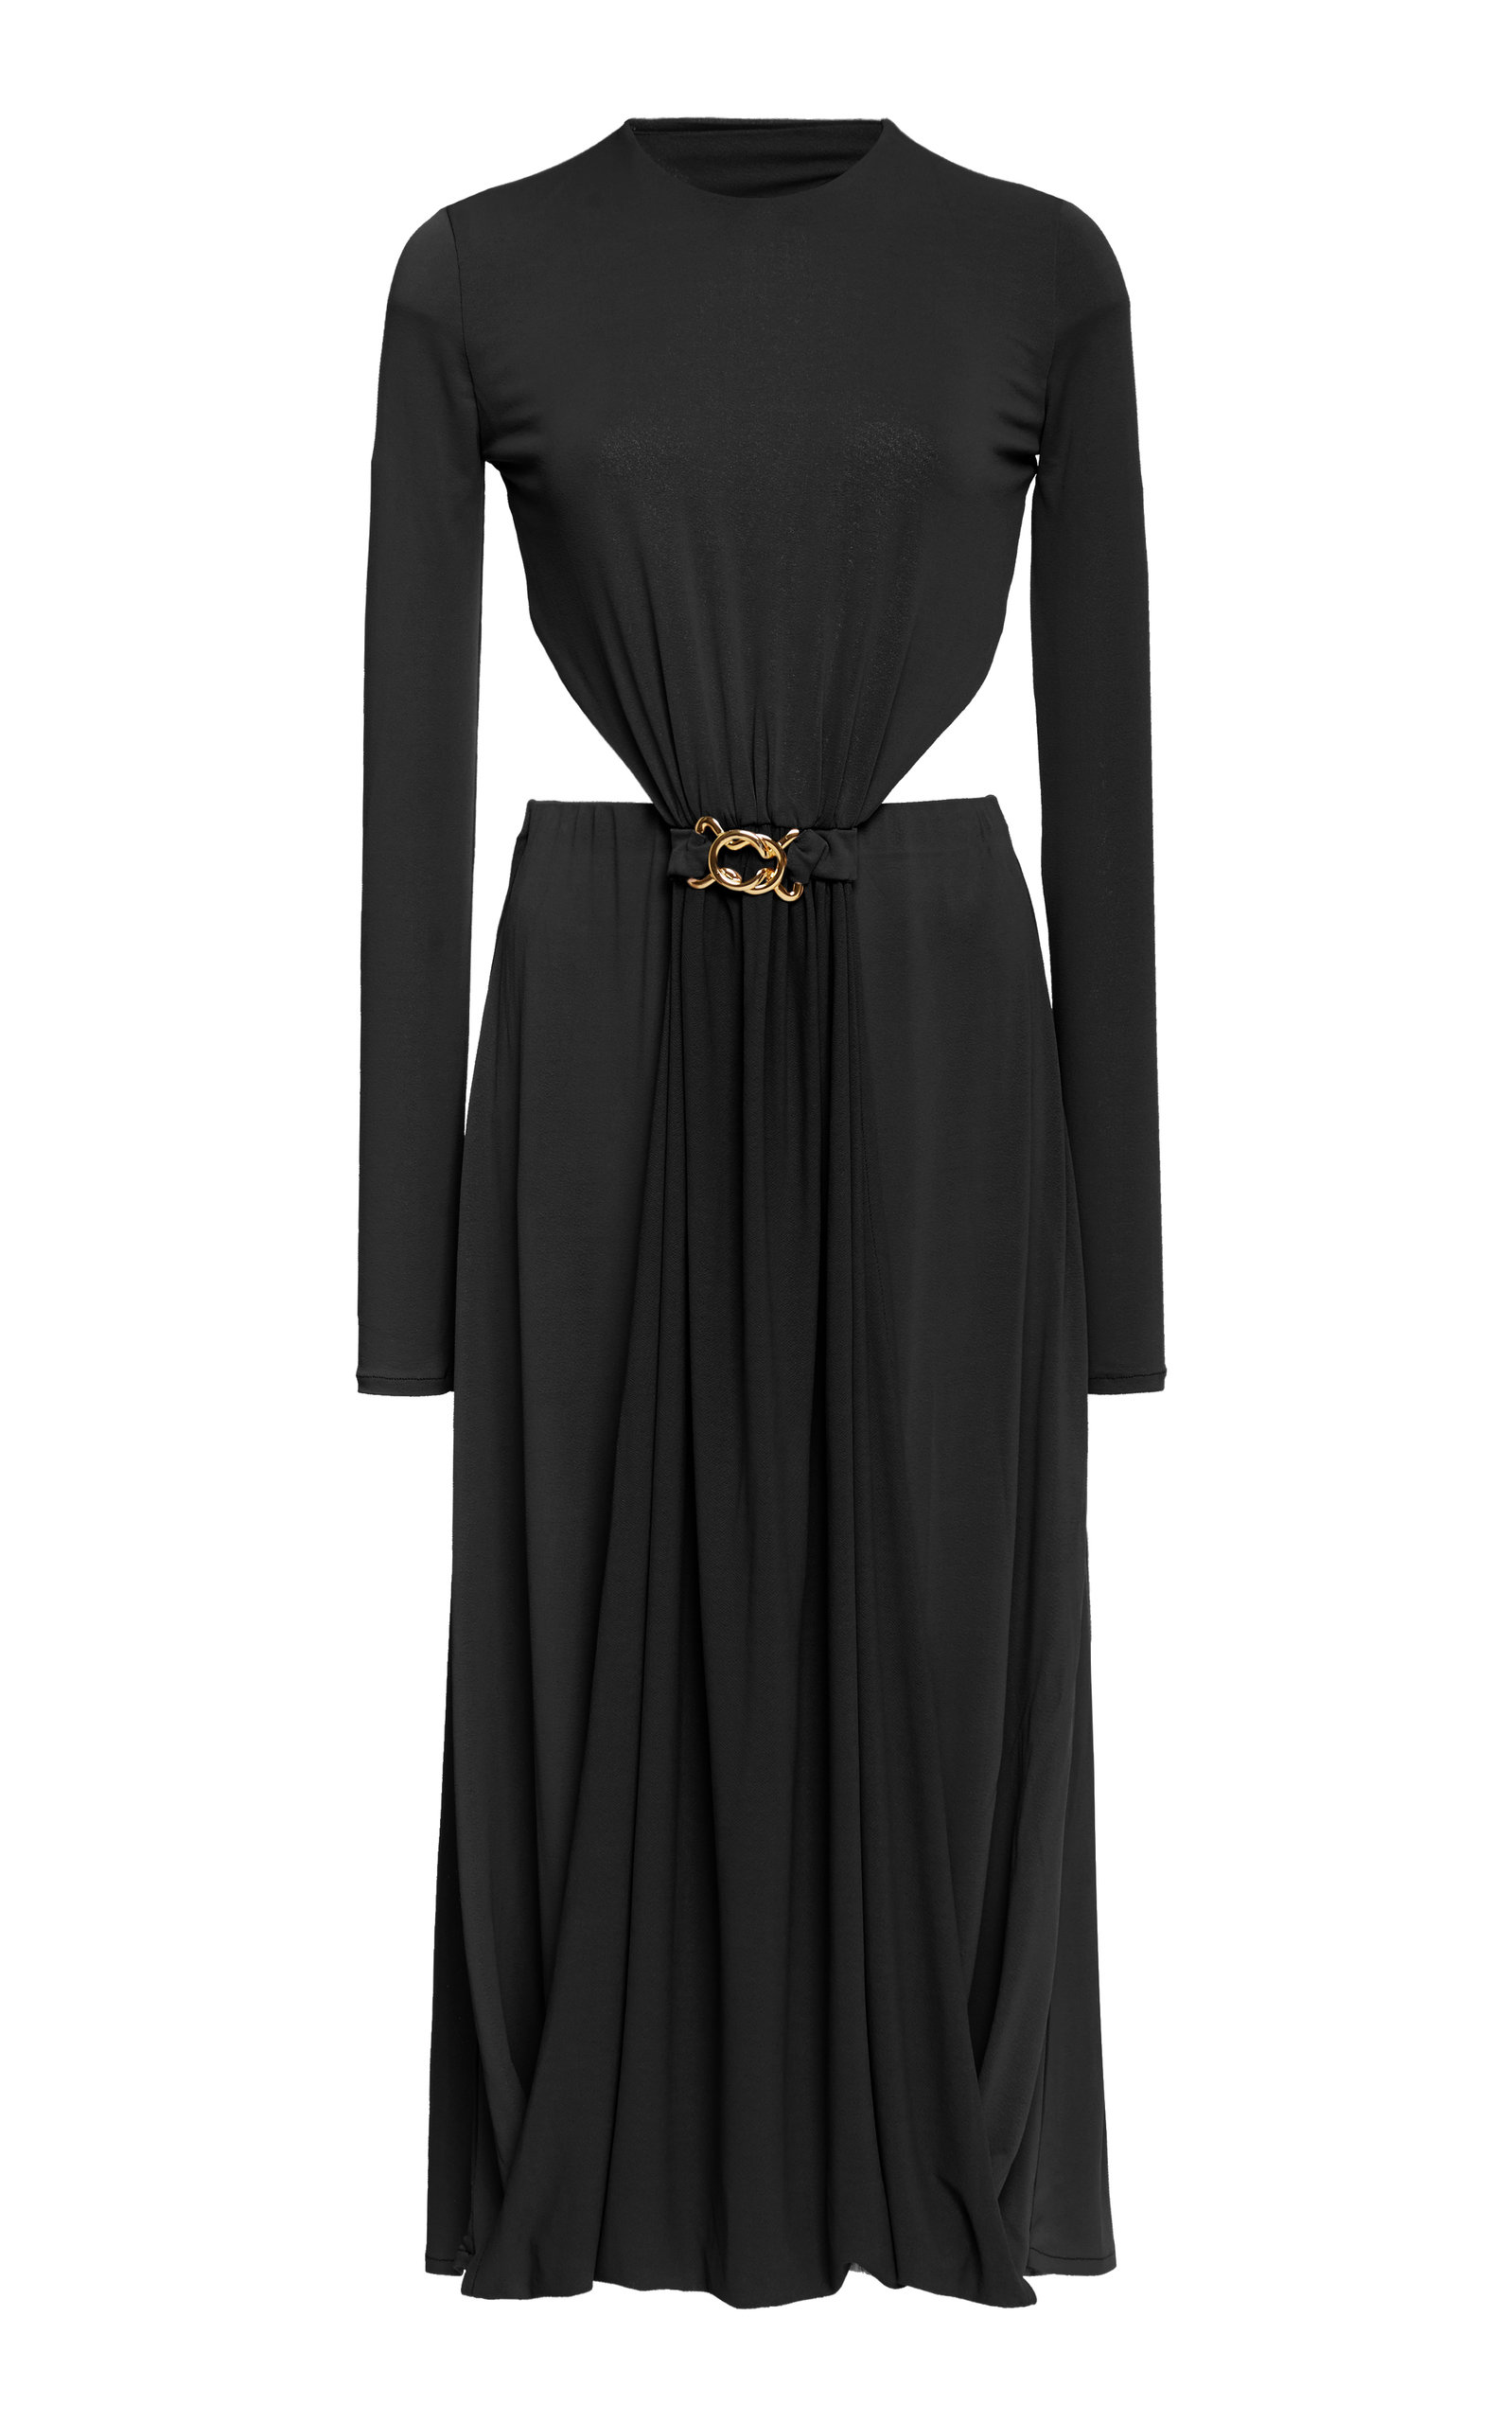 Buy DoDo Bar Or Tina Buckle-Detailed Cutout Crepe Dress online, shop DoDo Bar Or at the best price